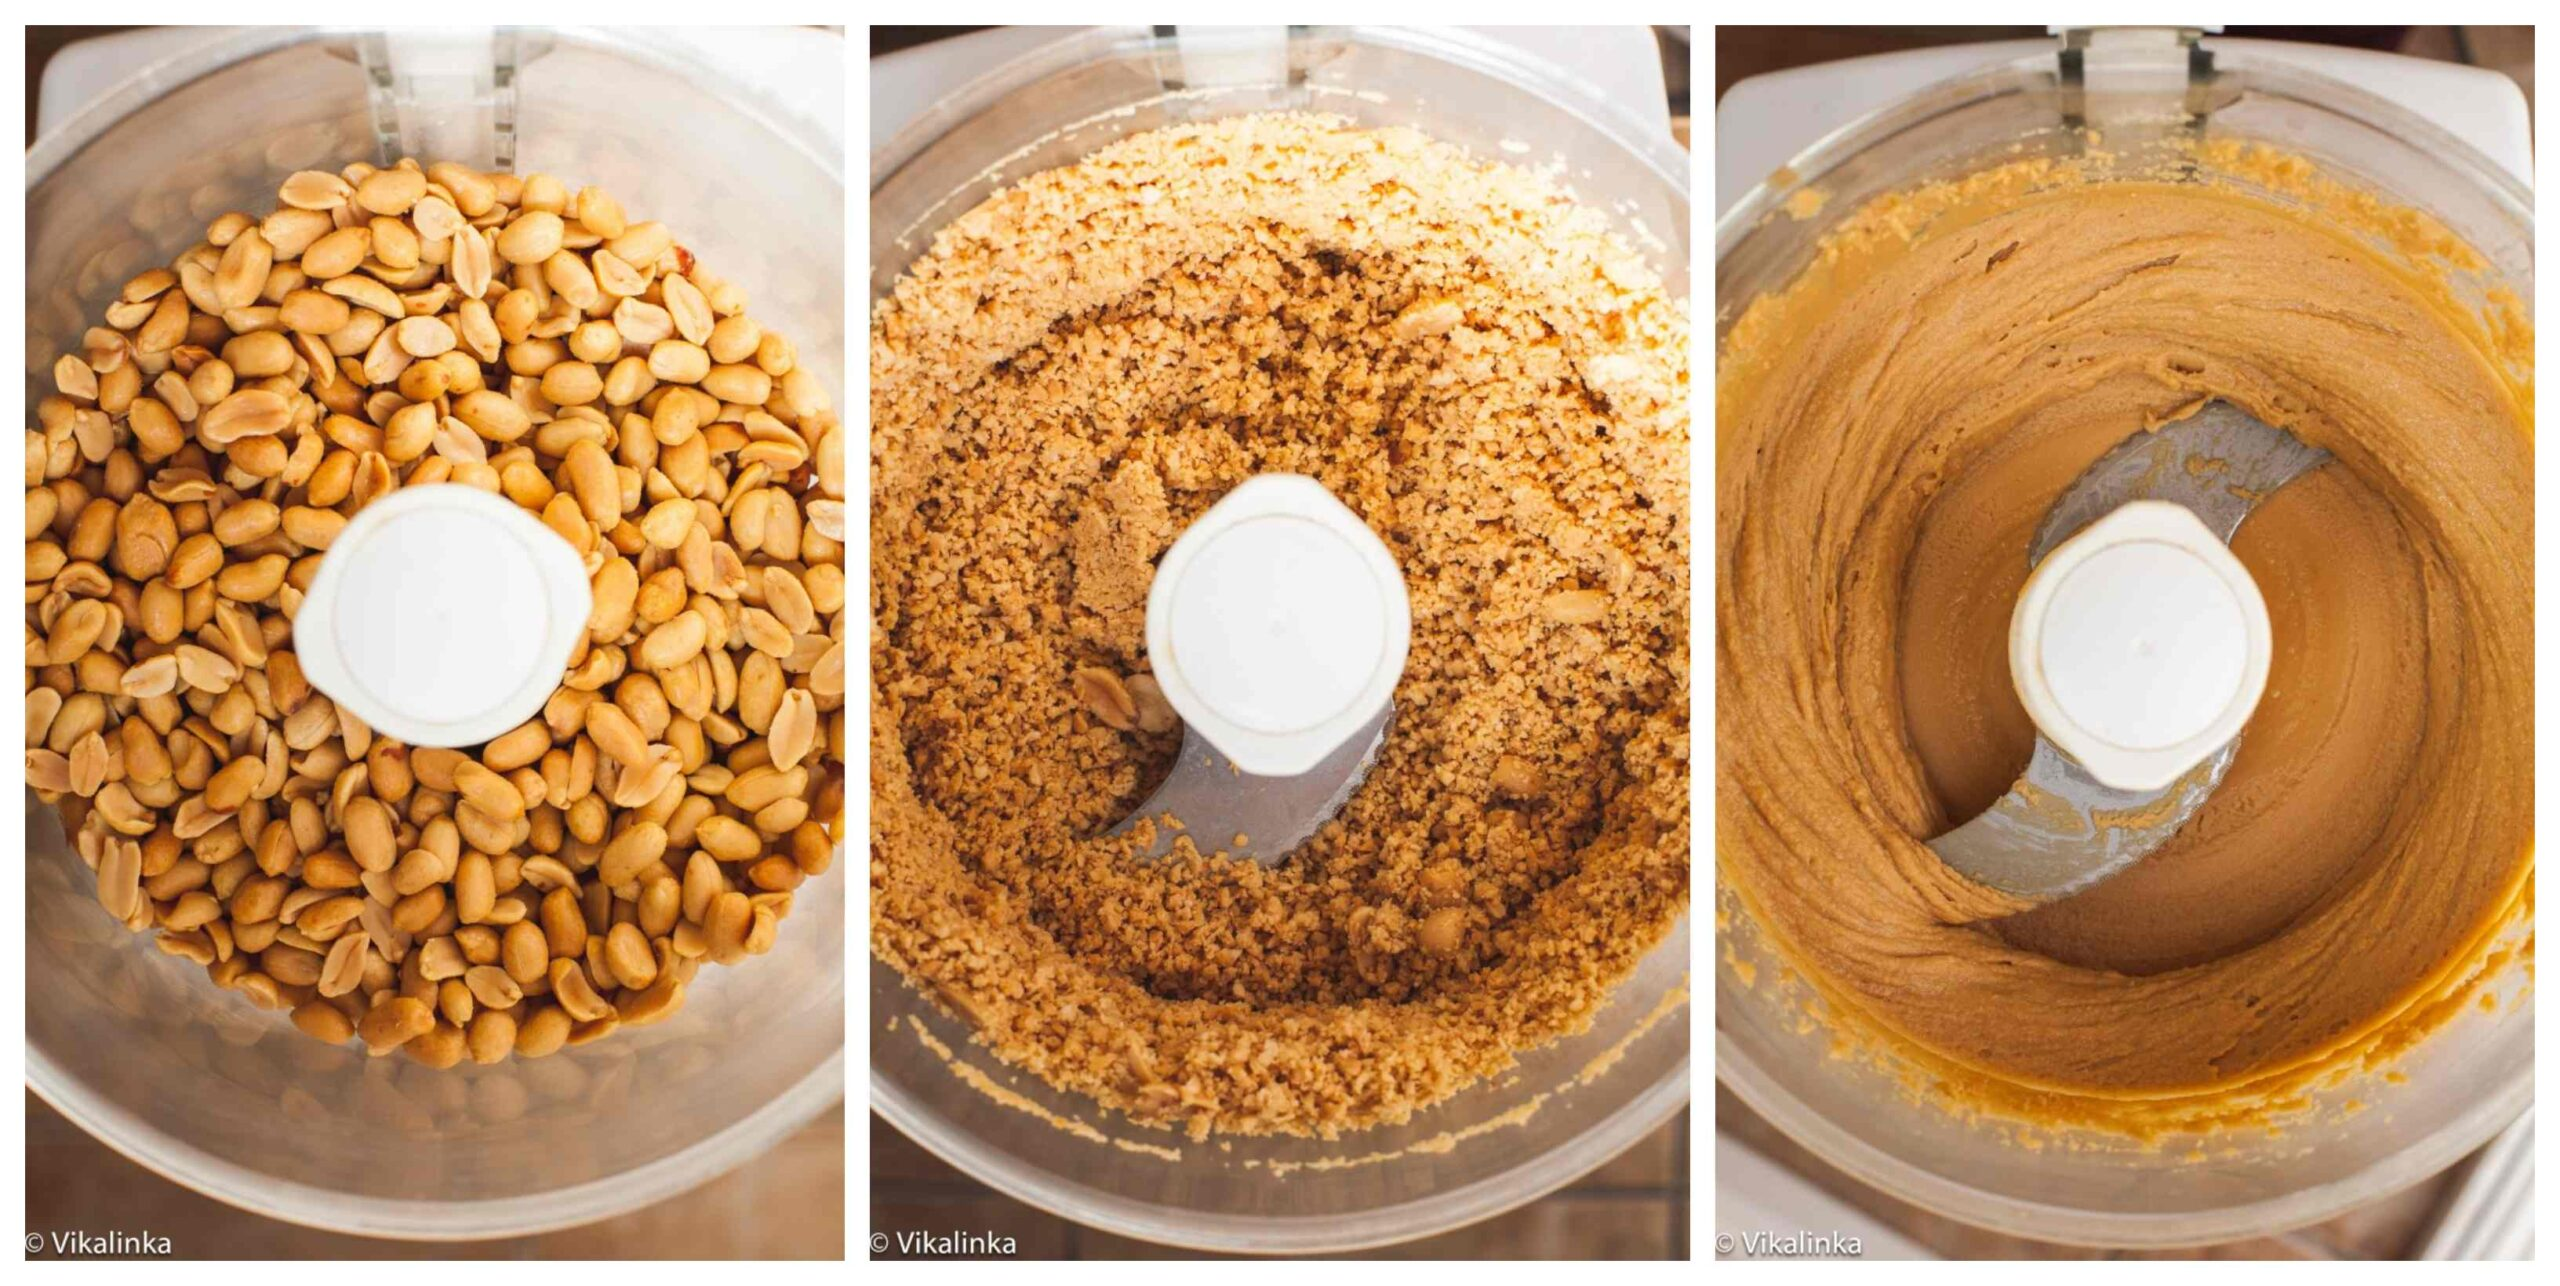 3 stages of making homemade peanut butter